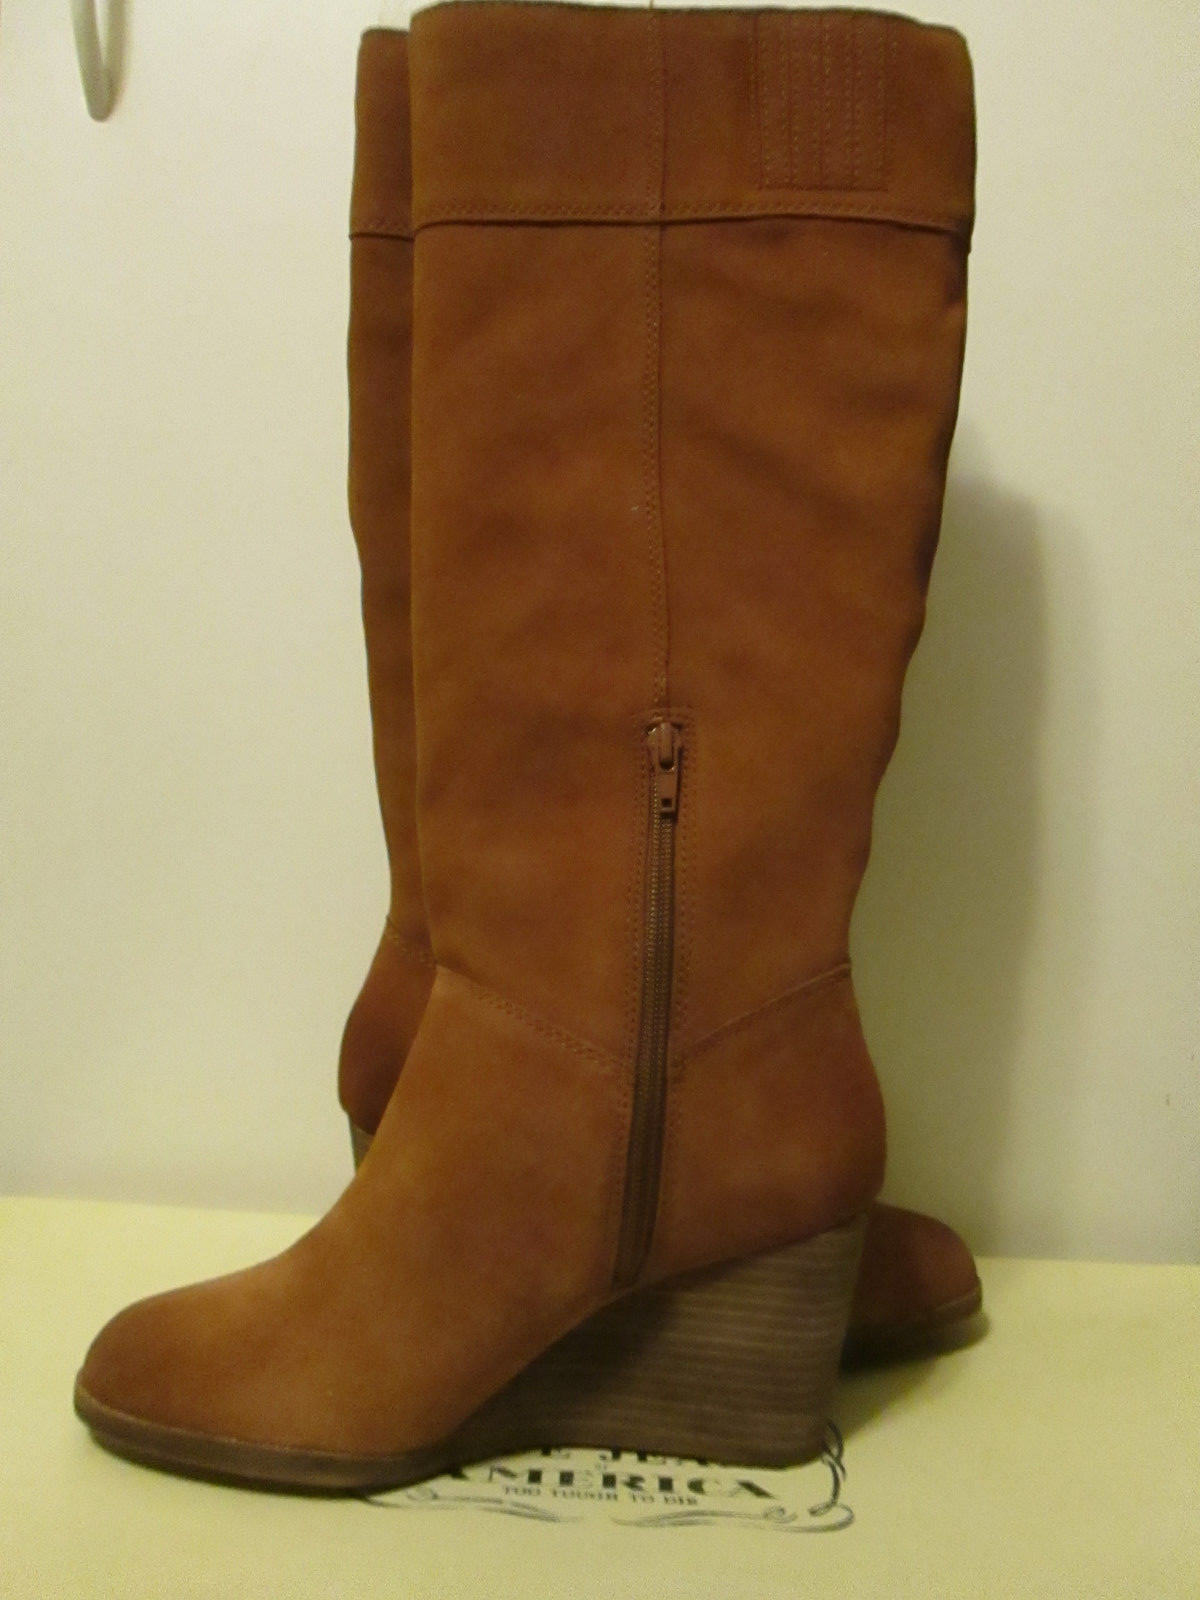 219 Pelle Lucky Brand Sanna Bombay Brown Suede Pelle 219 Wedge Knee High Stivali 9.5 54be69